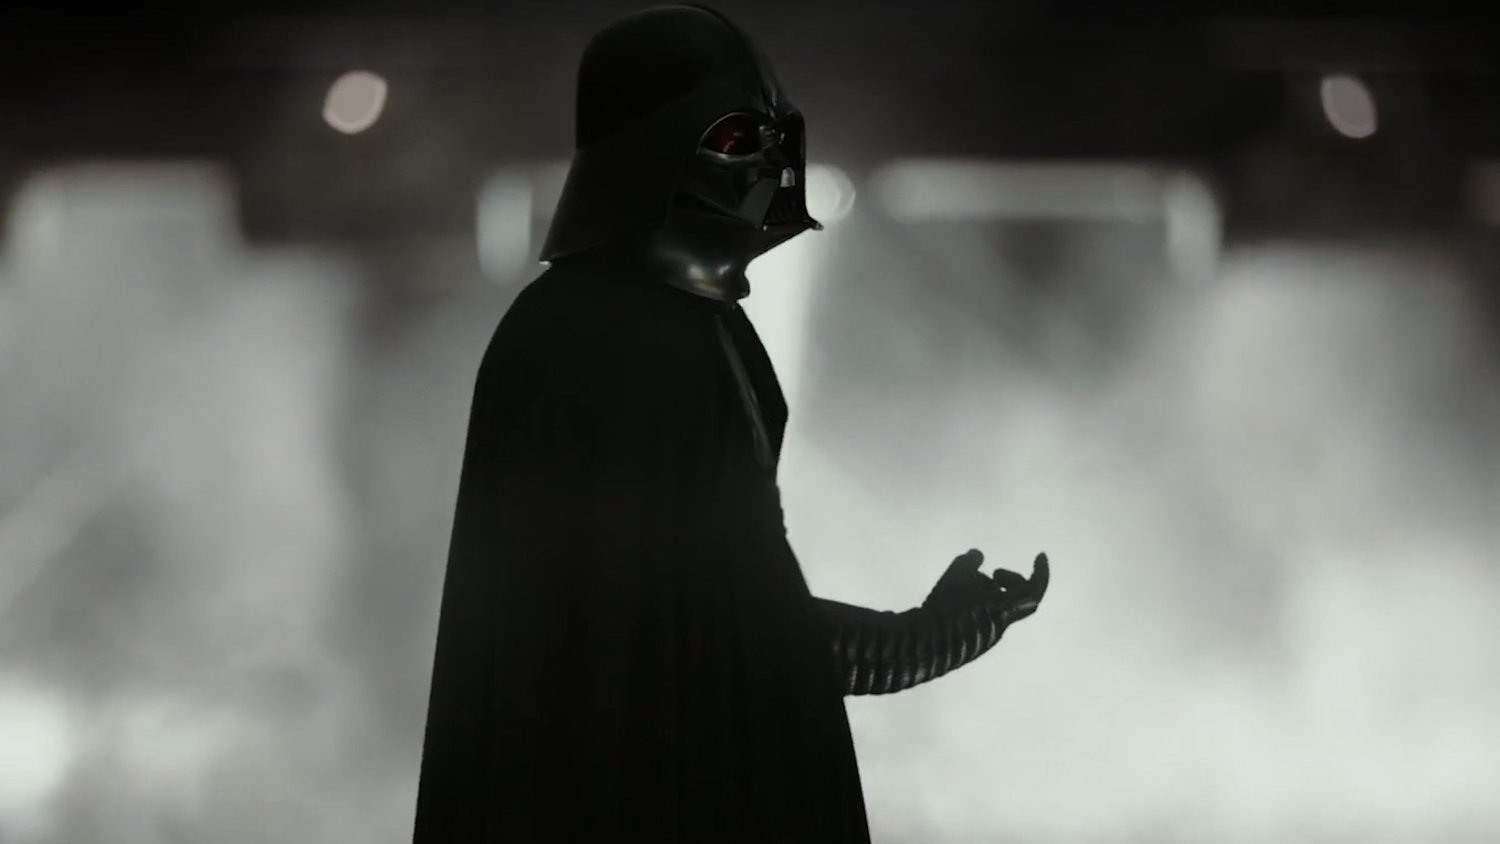 Future STAR WARS Films Won't Rely on the Legacy Characters From the Original Trilogy